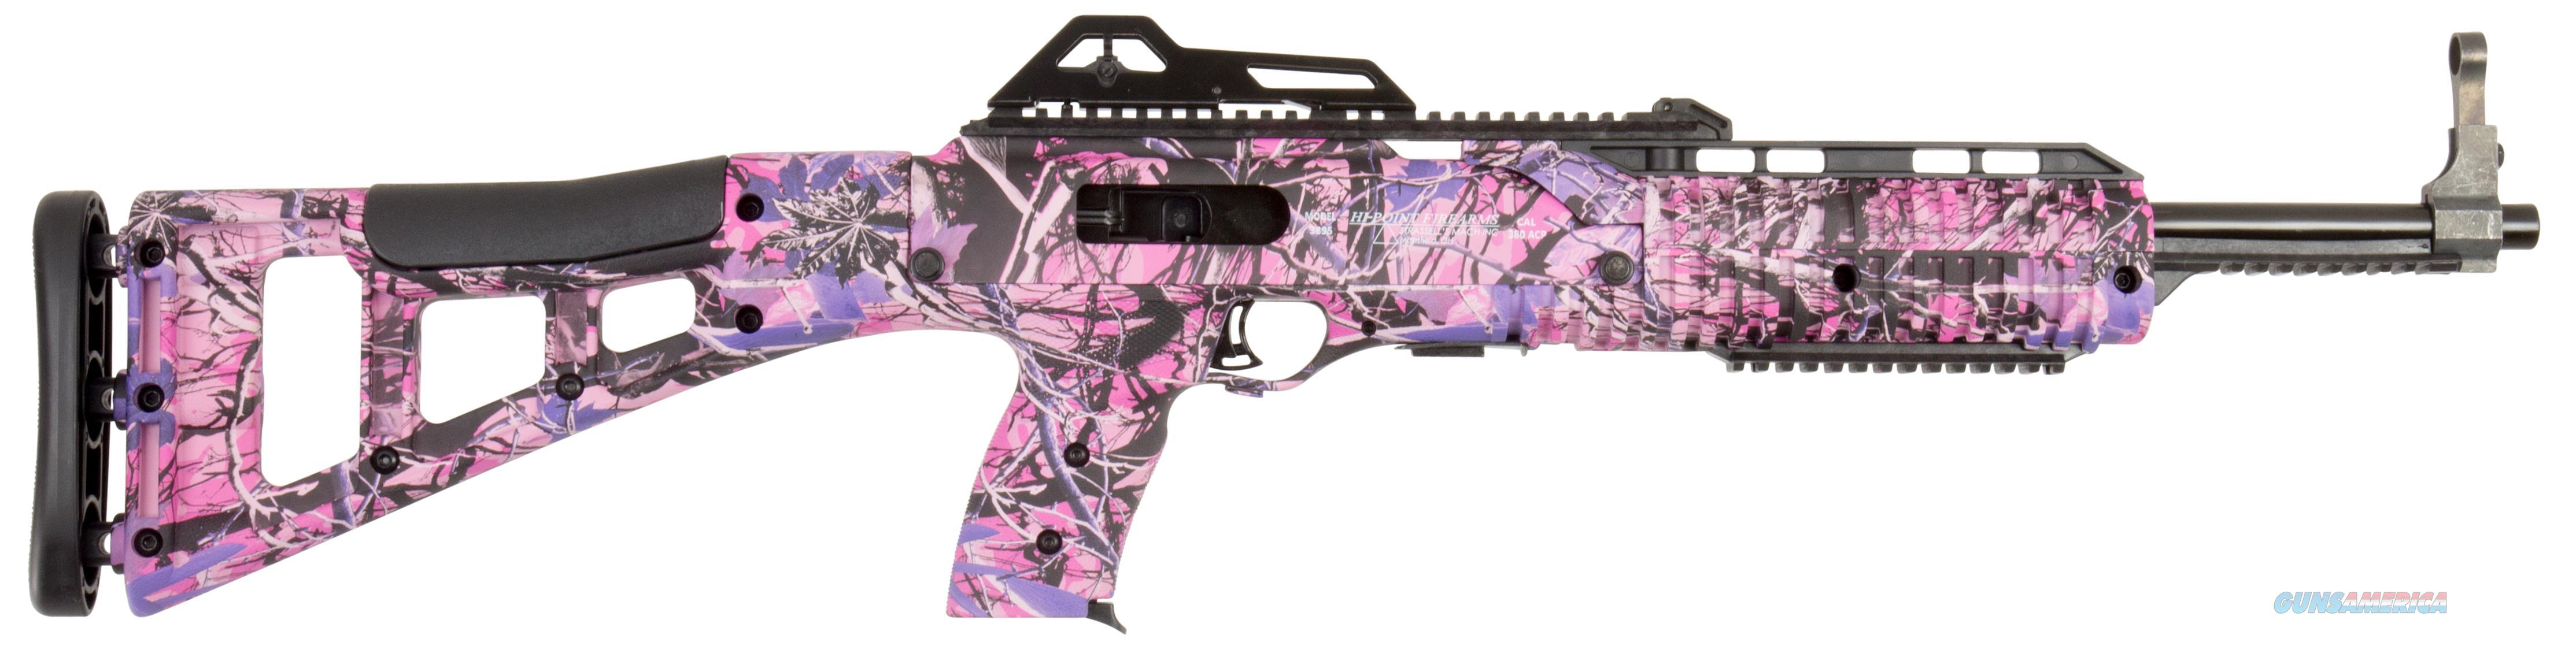 "Hi-Point 3895Tspi 3895Ts Carbine  Semi-Automatic 380 Automatic Colt Pistol (Acp) 16.5"" 10+1 Polymer Skeleton Country Girl Camo Stk Country Girl Camo 3895TS PI  Guns > Rifles > H Misc Rifles"